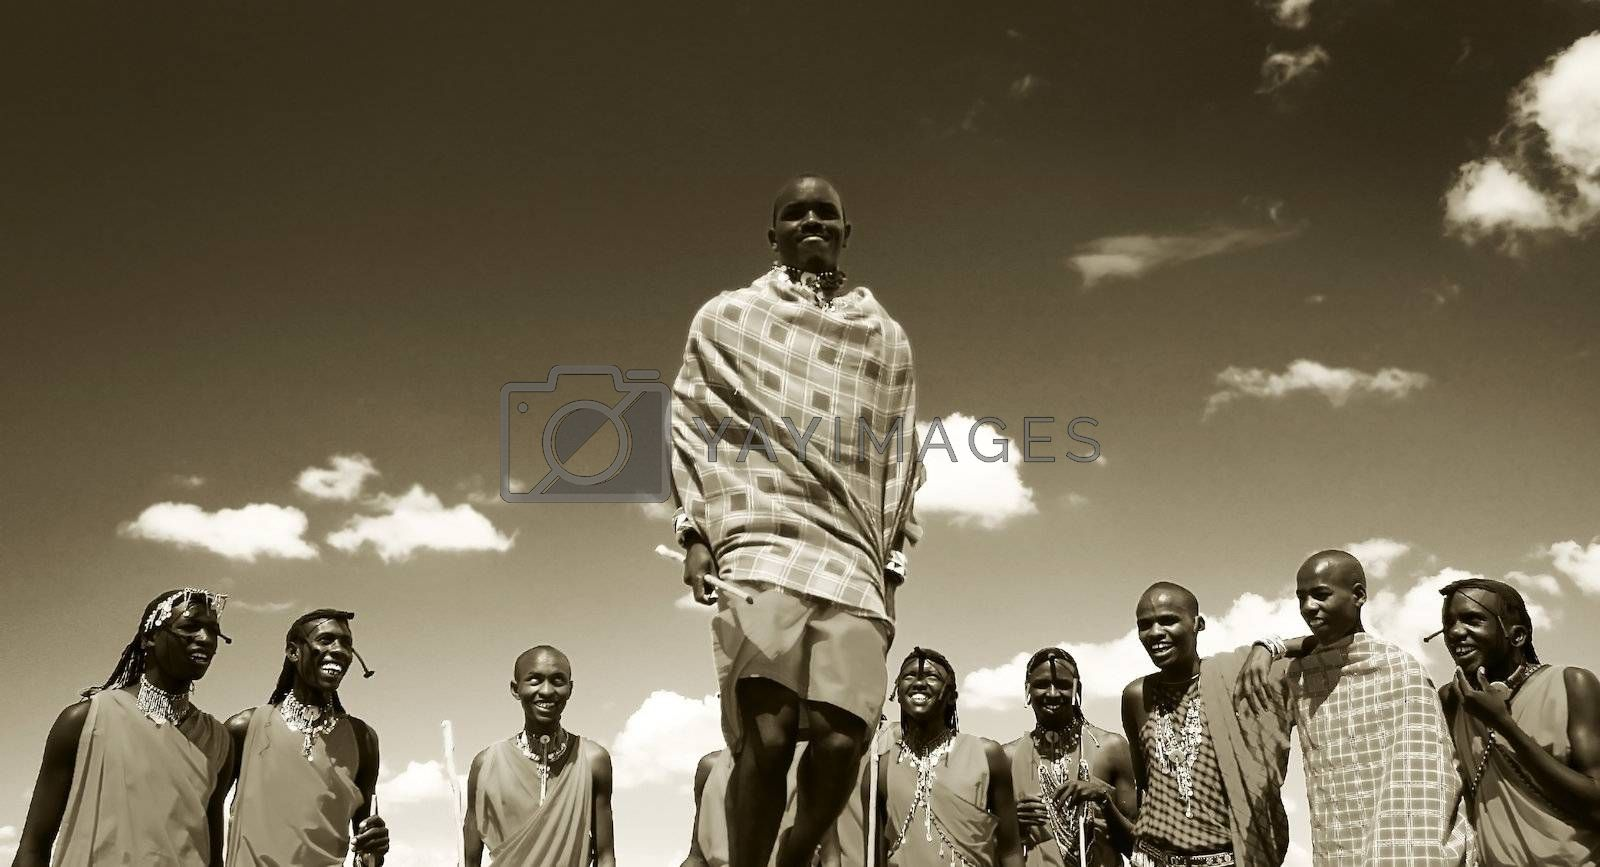 African traditional jumps, Masai Mara warriors dancing, Kenya